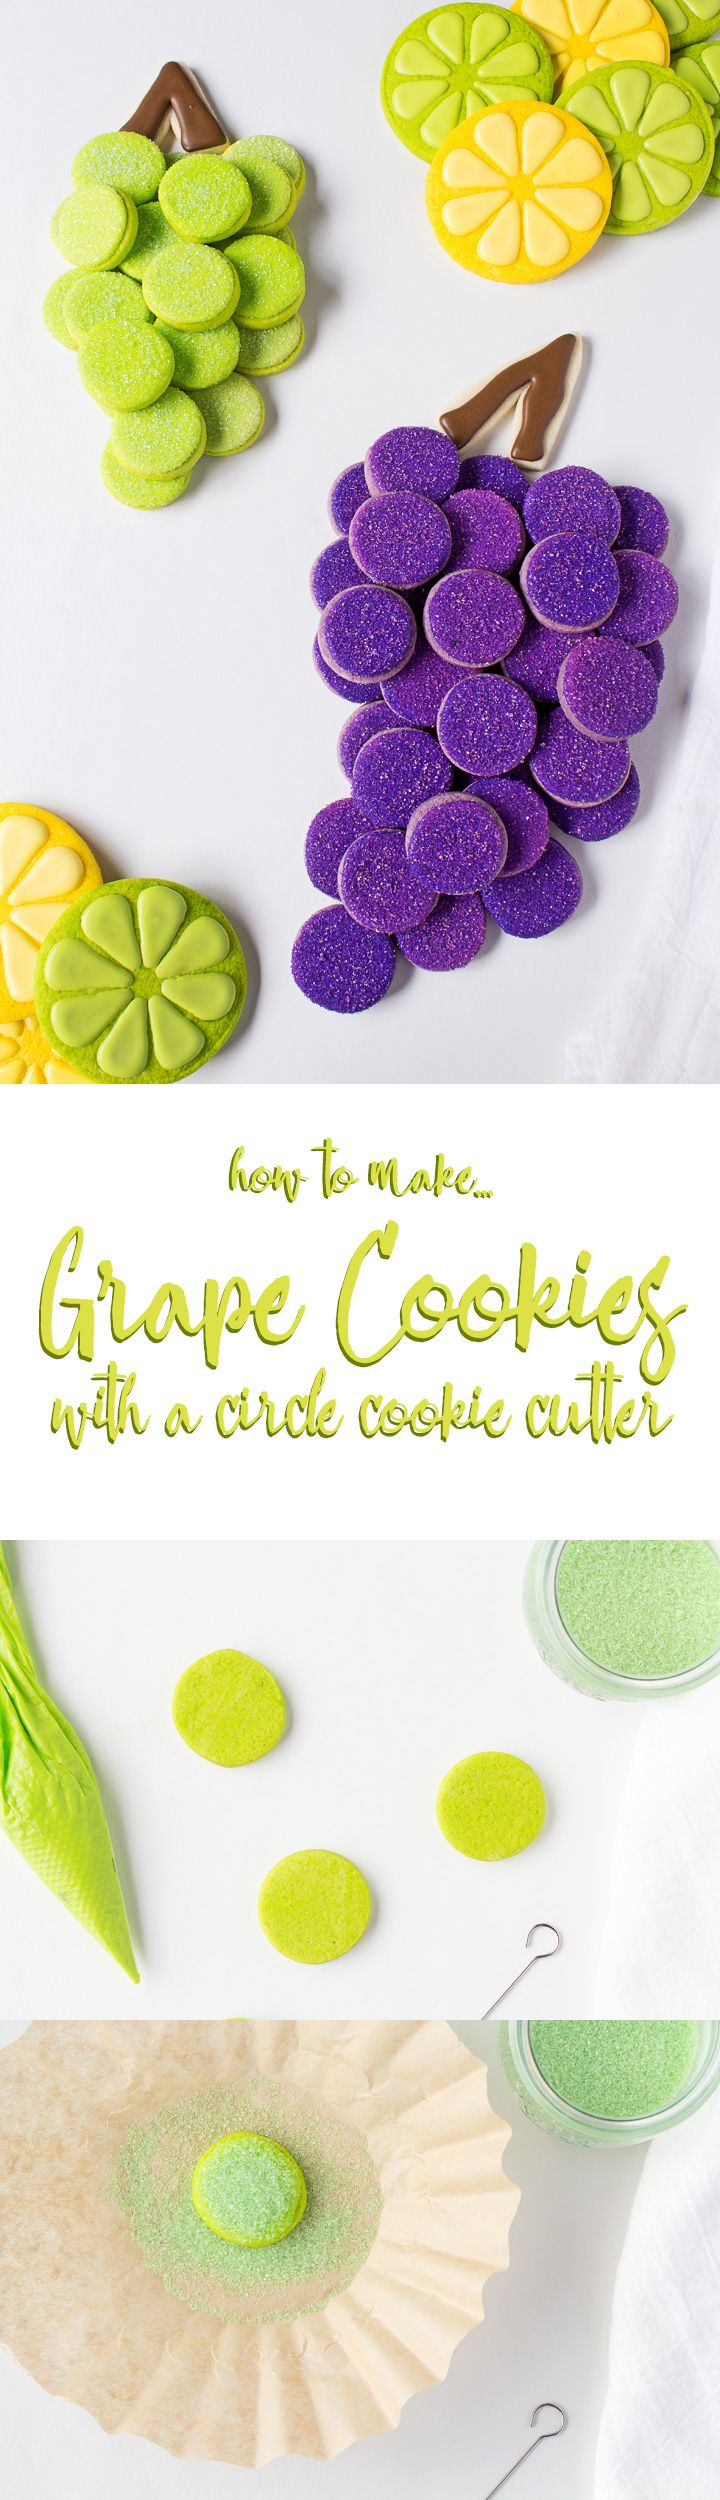 How to Make Grape Cookies | The Bearfoot Baker Decorated Sugar Cookies | Sugar Cookies | Roll Out Cookies | Royal Icing | Cookie Video | How to | Summer Cookies | Grape Cookies | The Bearfoot Baker